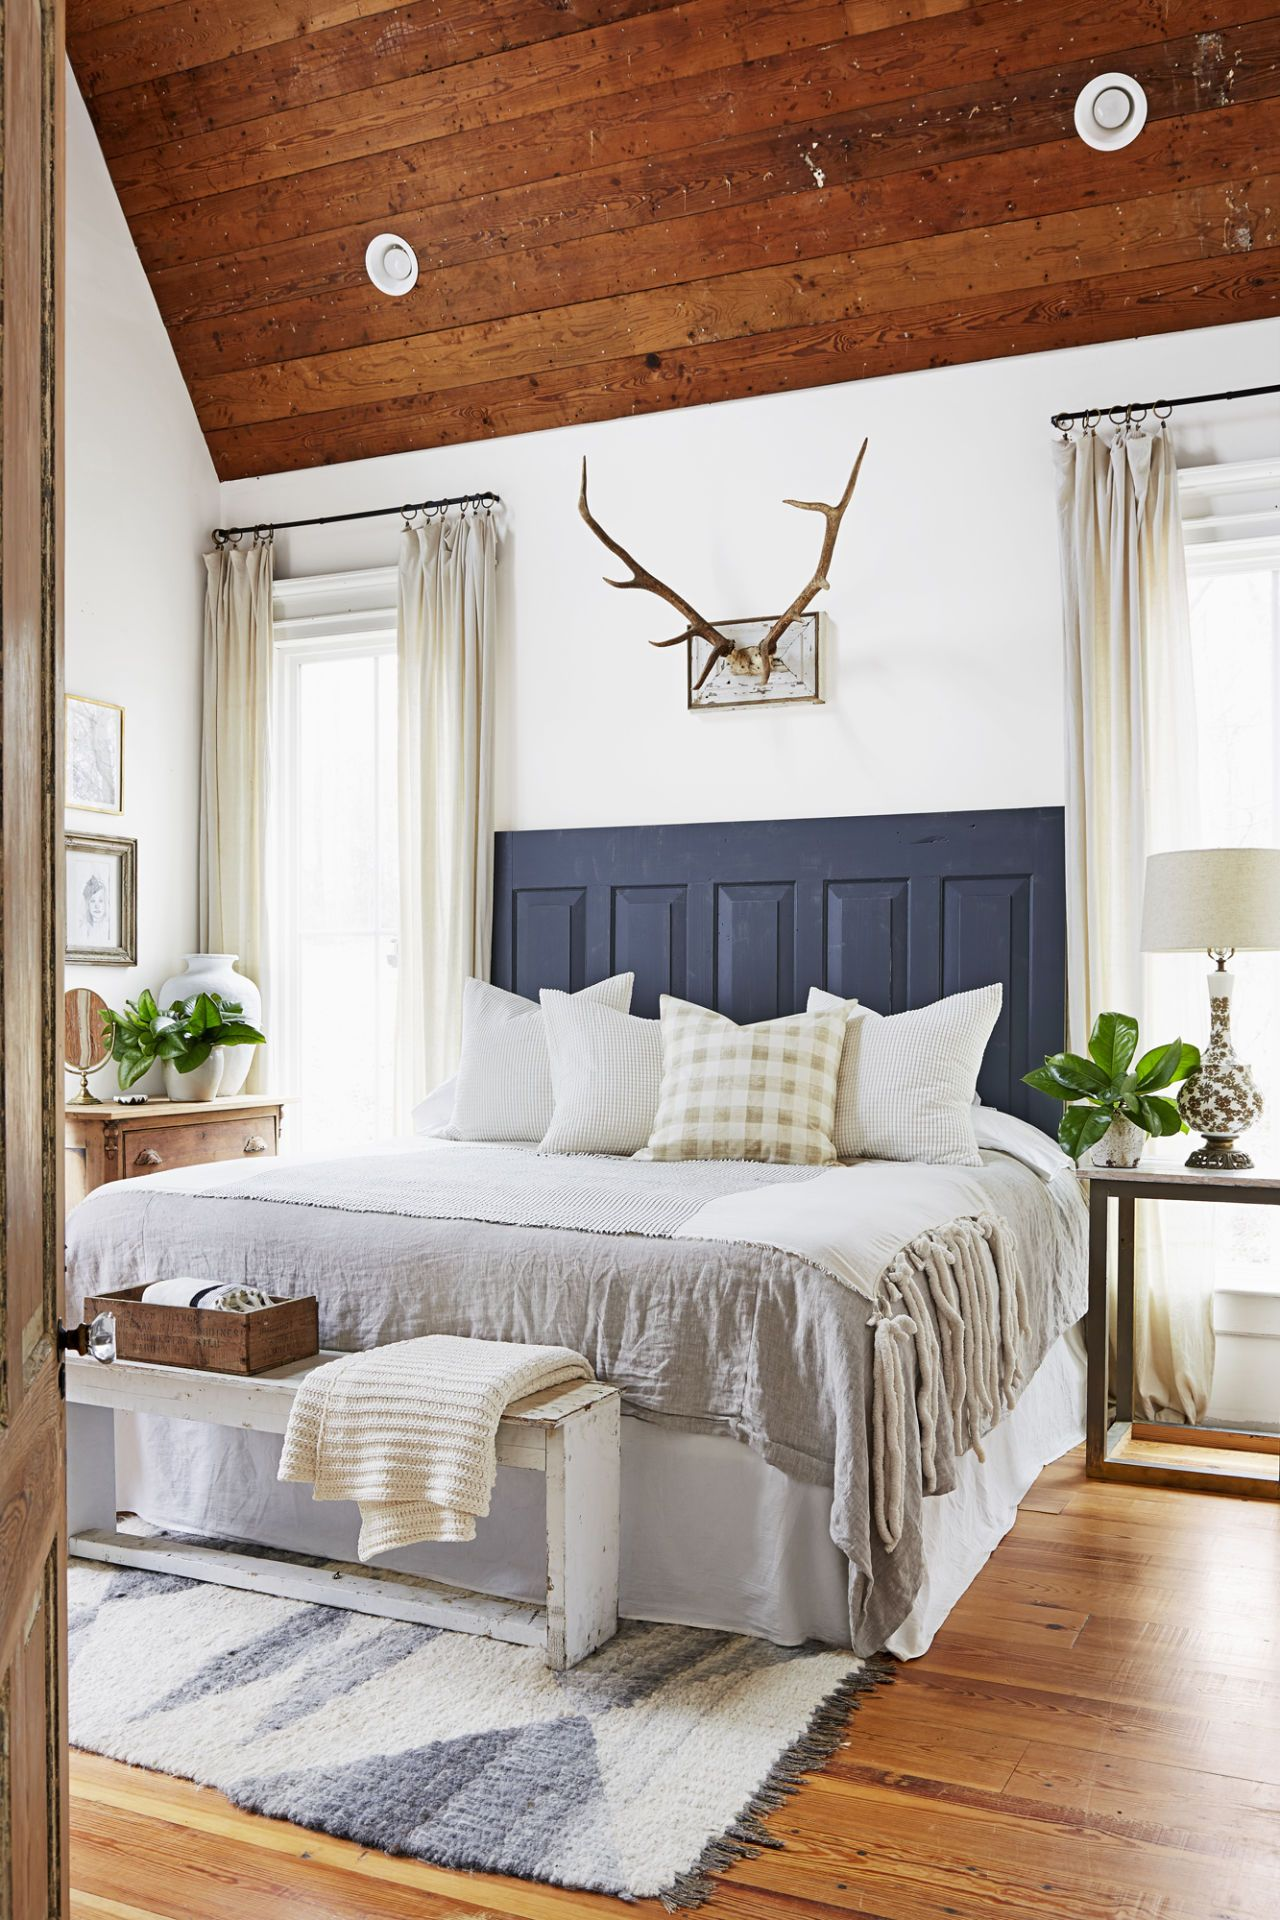 Master bedroom headboard ideas  Inside a Mississippi Farmhouse That Fits a Family of   Master